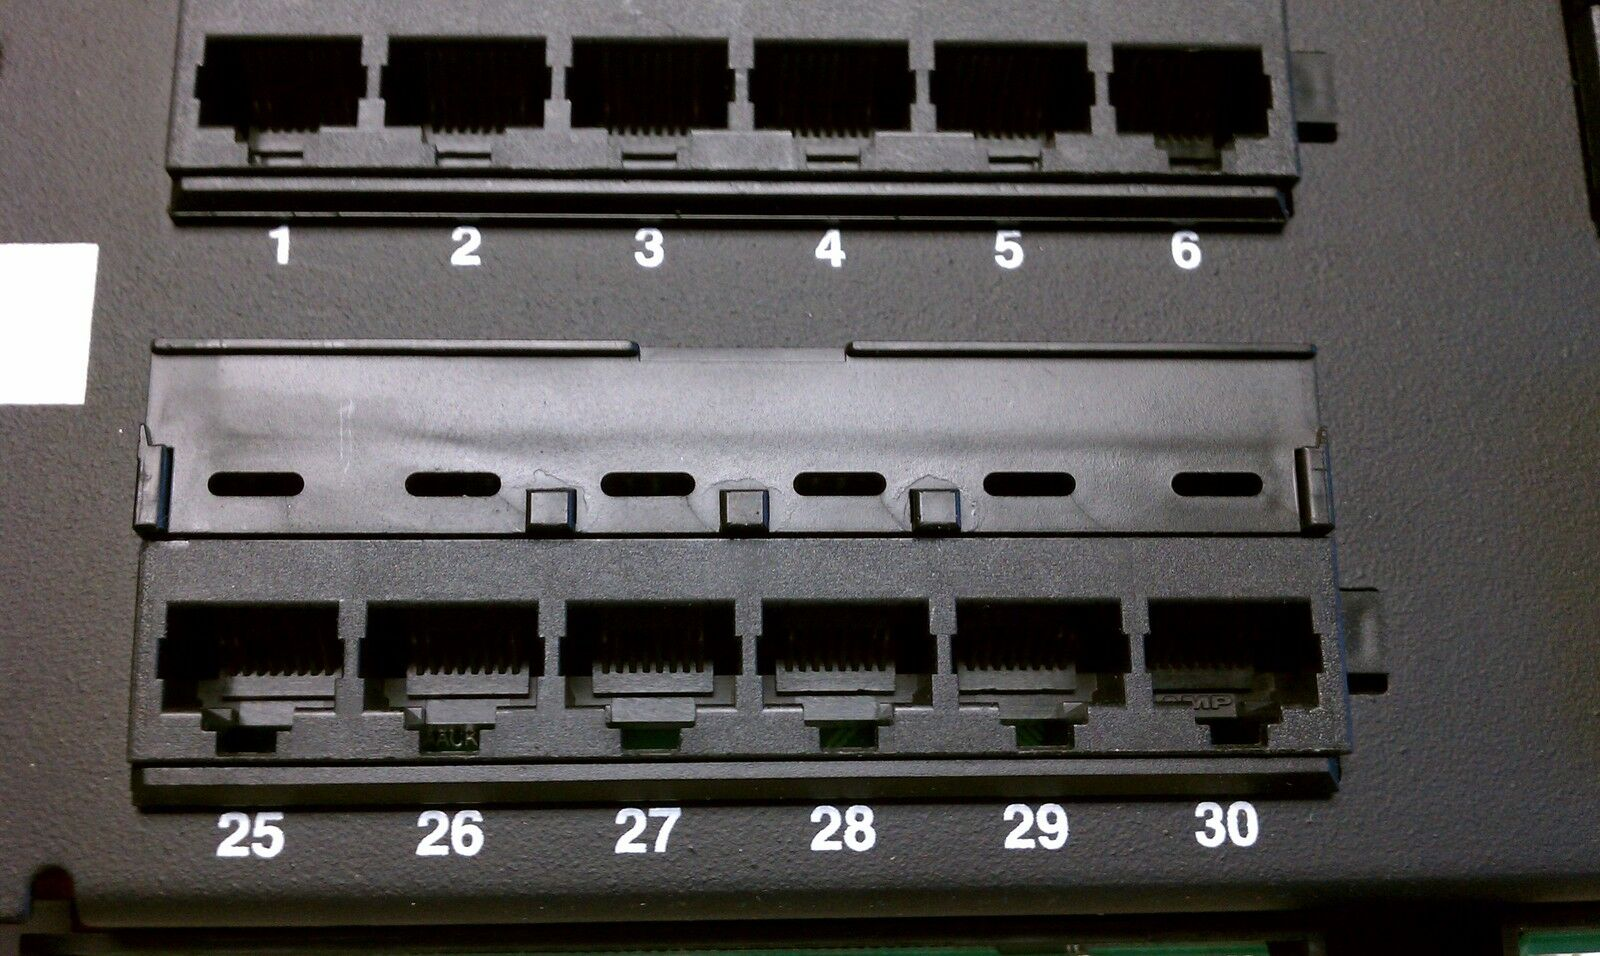 Amp Netconnect Patch Panel Wiring Diagram. wrg 2833 amp netconnect patch  panel wiring diagram. ethernet ocasi n en venta. netconnect cat6 modular patch  panels comtec direct. amp netconnect patch panel 2u 19A.2002-acura-tl-radio.info. All Rights Reserved.